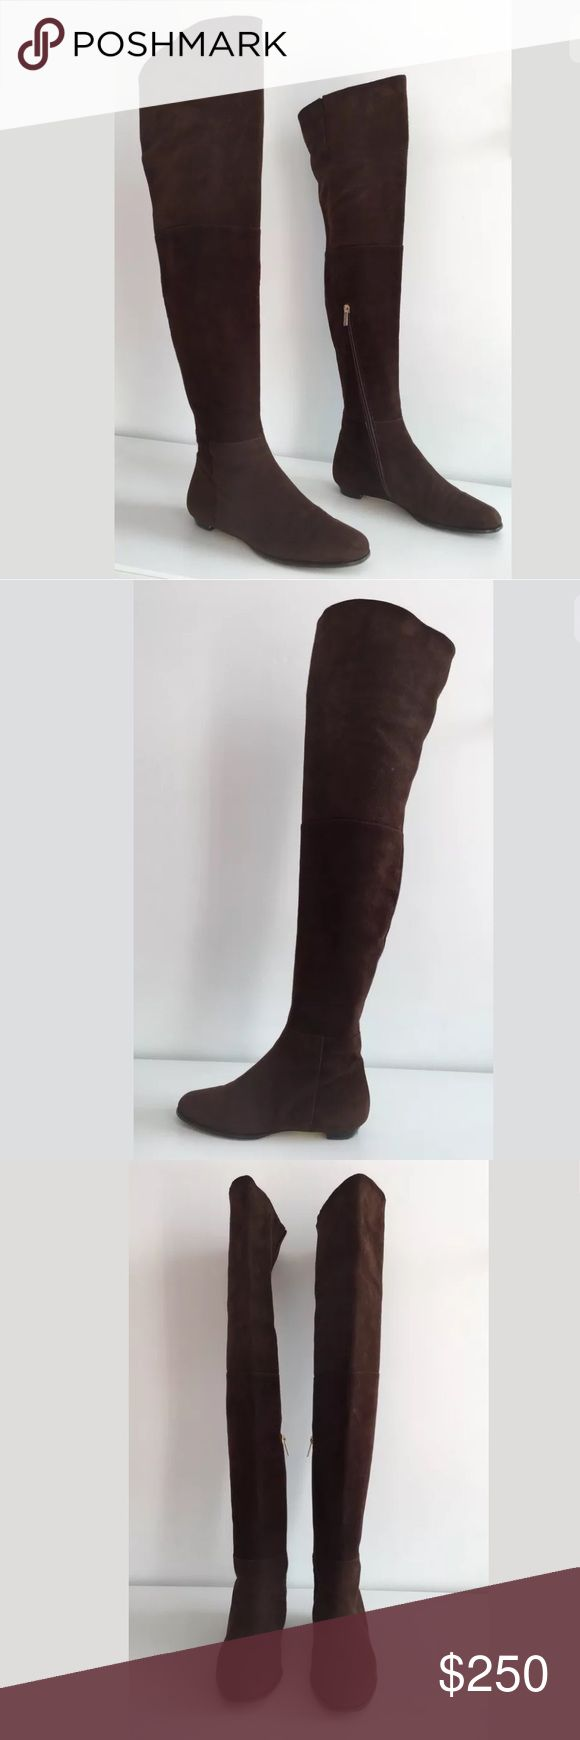 """JIMMY CHOO EDNA OVER THE KNEE SUEDE FLAT BOOTS JIMMY CHOO Edna  -Condition: Excellent Condition. -No signs of wear above soles. -Size: EU 36. -Model: Edna. -Color: Brown. -Soft Italian suede upper.  -Tapered round toe.  -Side partial zip closure.  -Leather lined; Leather sole. -Heel measures: 0.5"""". -Shaft measures 24½'' tall.  -Circumference: 16'' around widest point. -Made in Italy. -Retails for $1,250.00 -100% Authentic. -Same Day Shipping. Jimmy Choo Shoes Over the Knee Boots"""